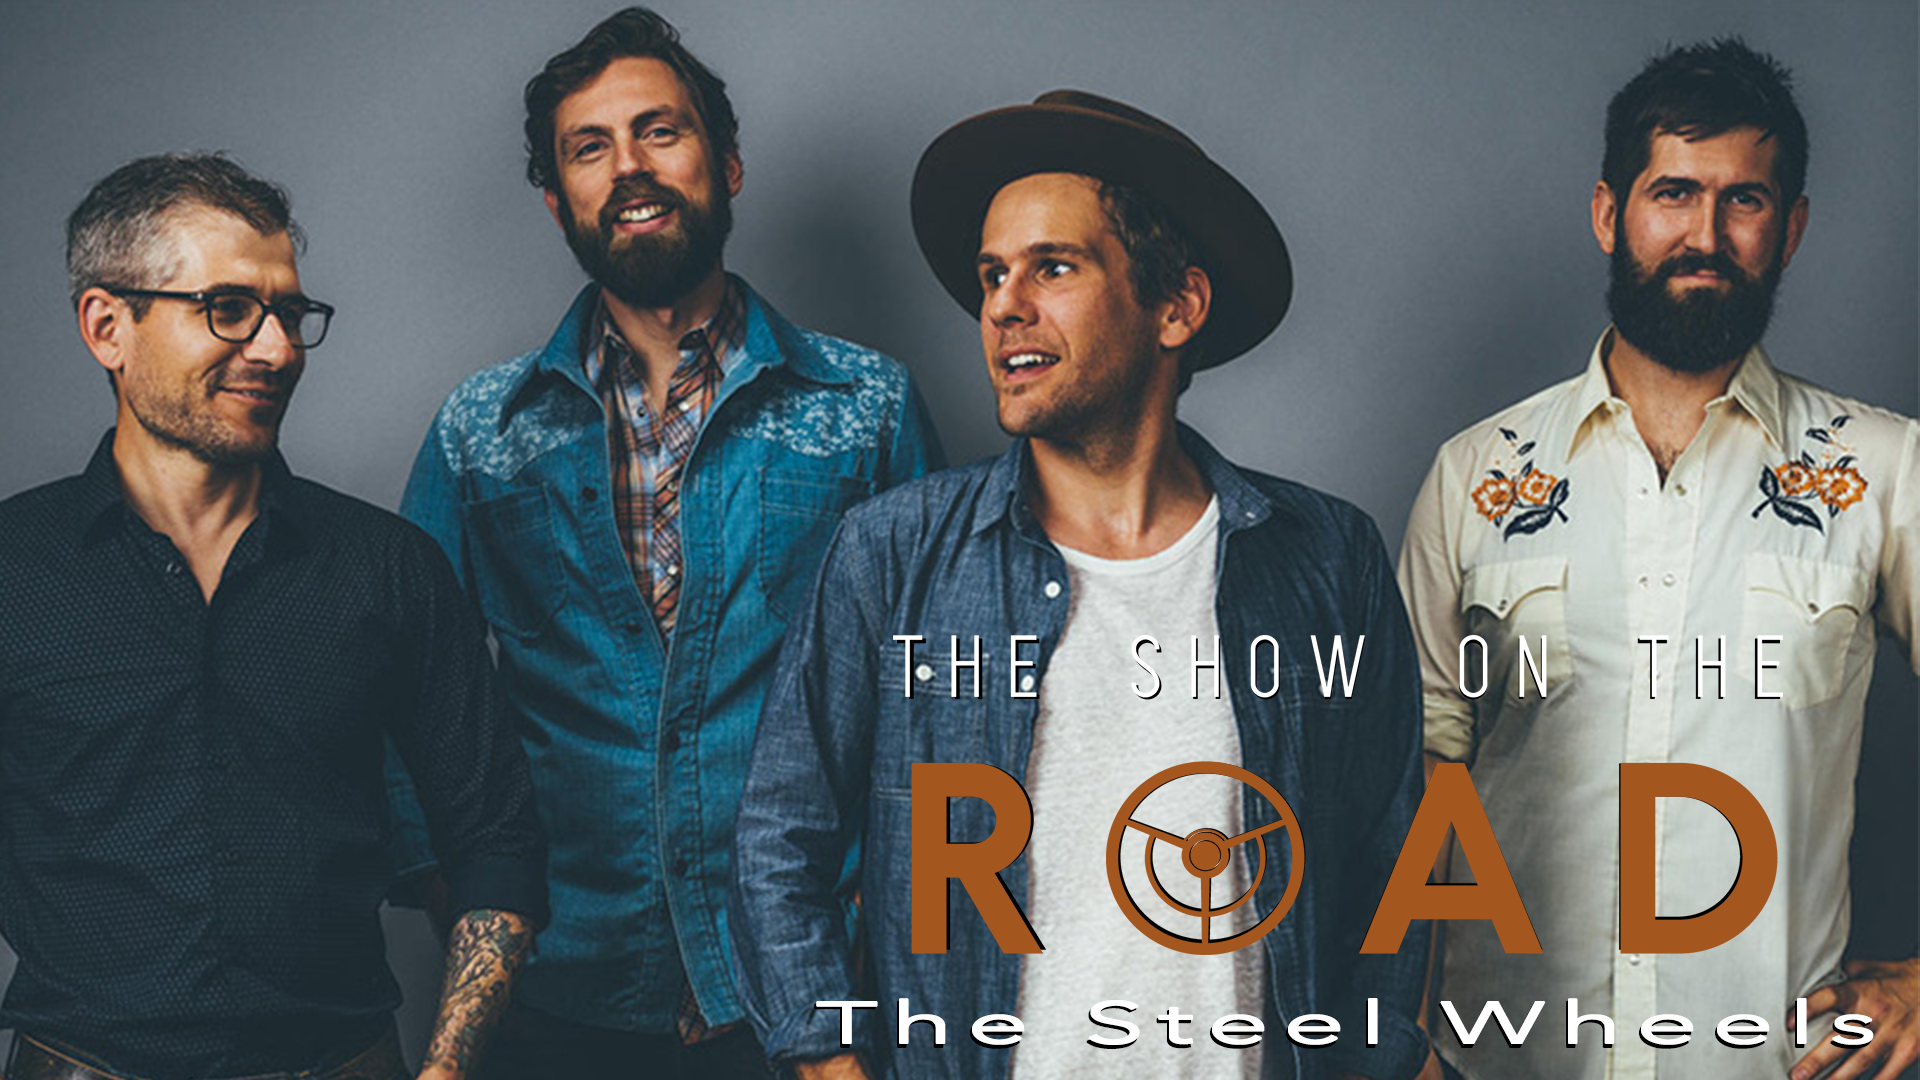 The Show On The Road – The Steel Wheels